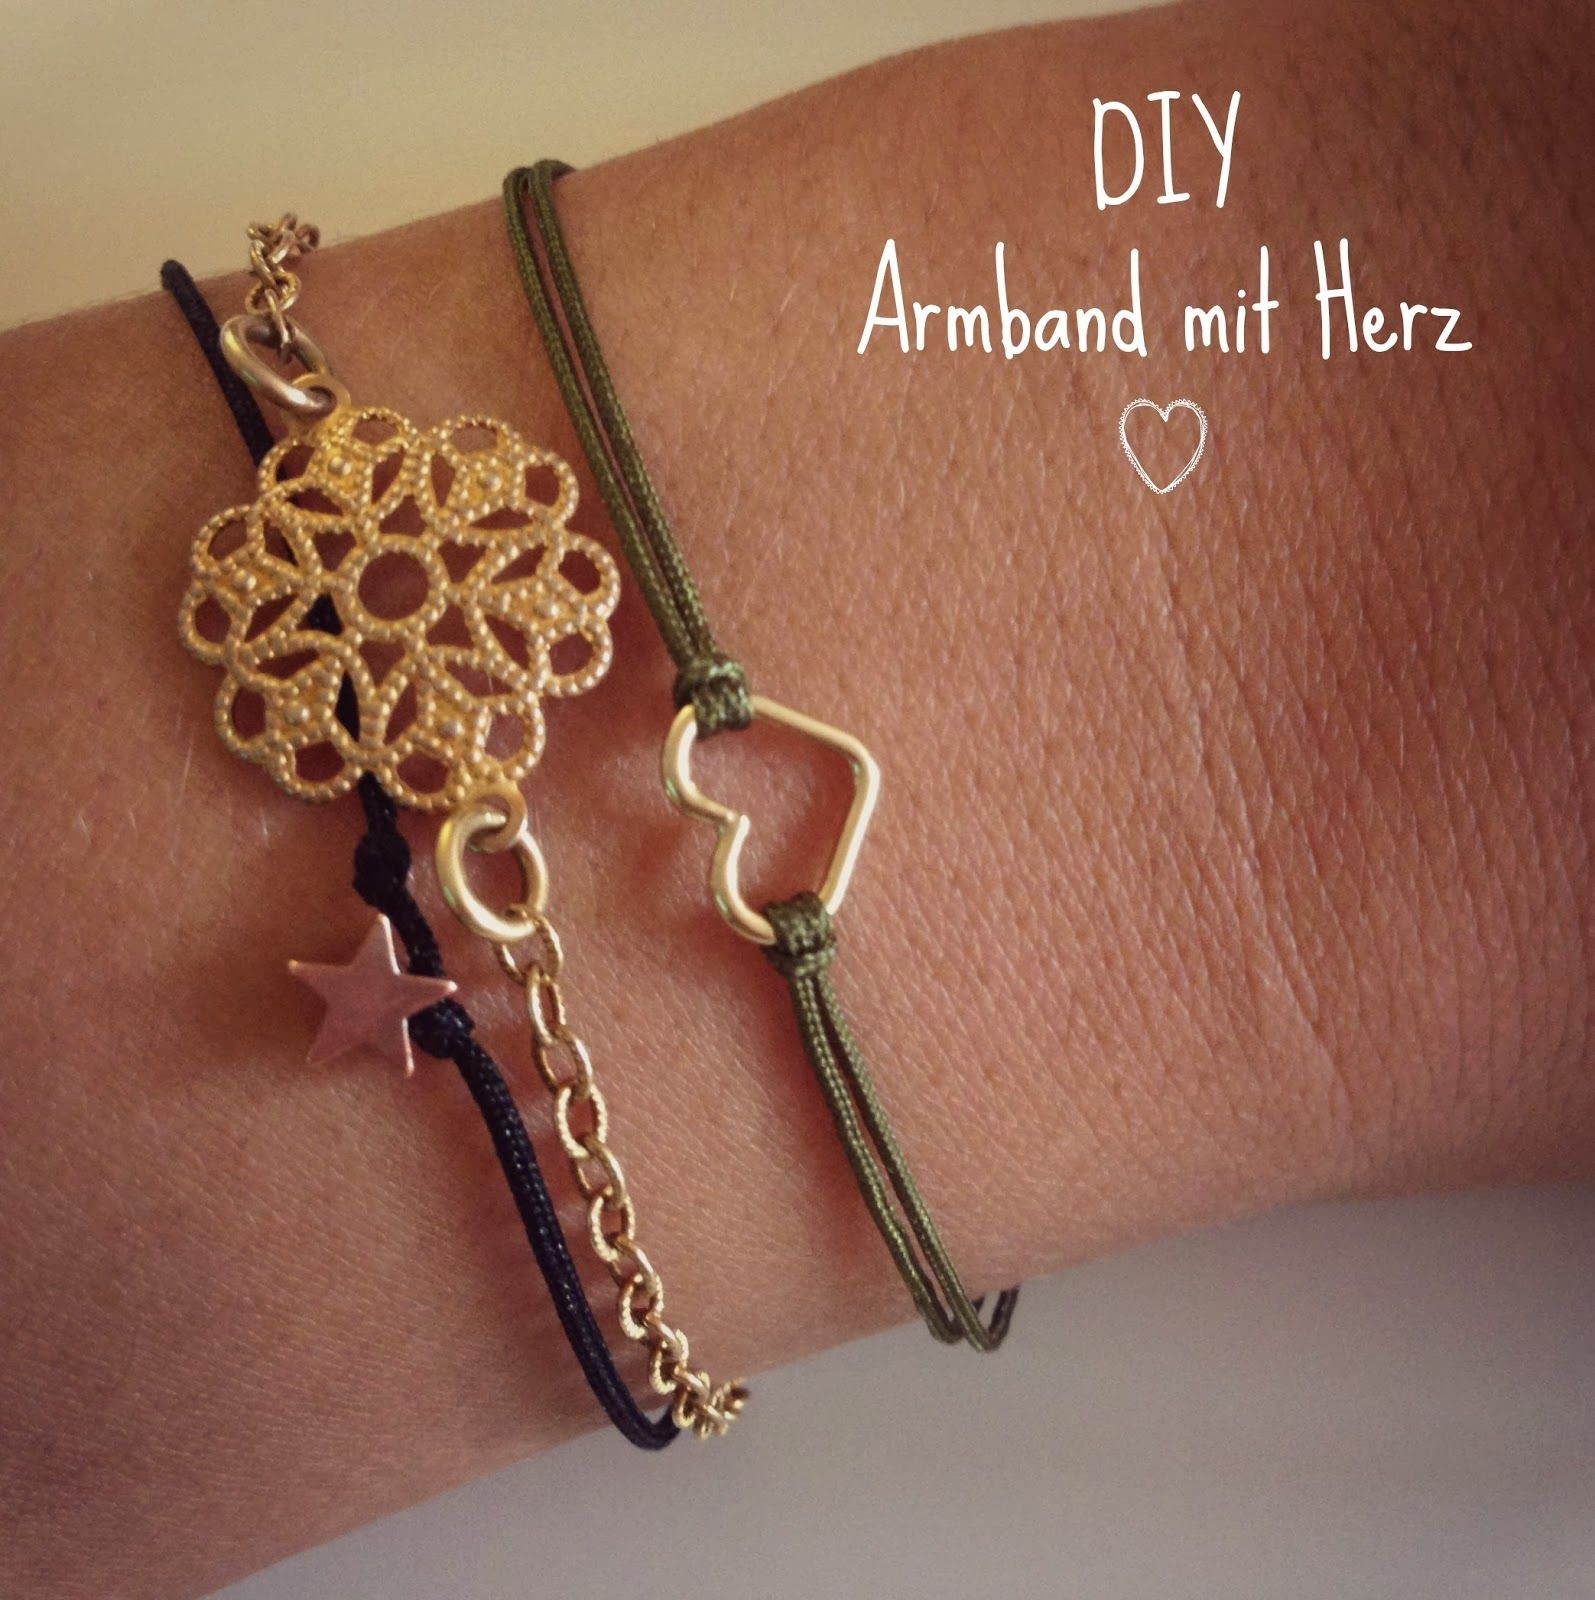 diy weihnachtsgeschenk armband mit herz diyjewllery. Black Bedroom Furniture Sets. Home Design Ideas